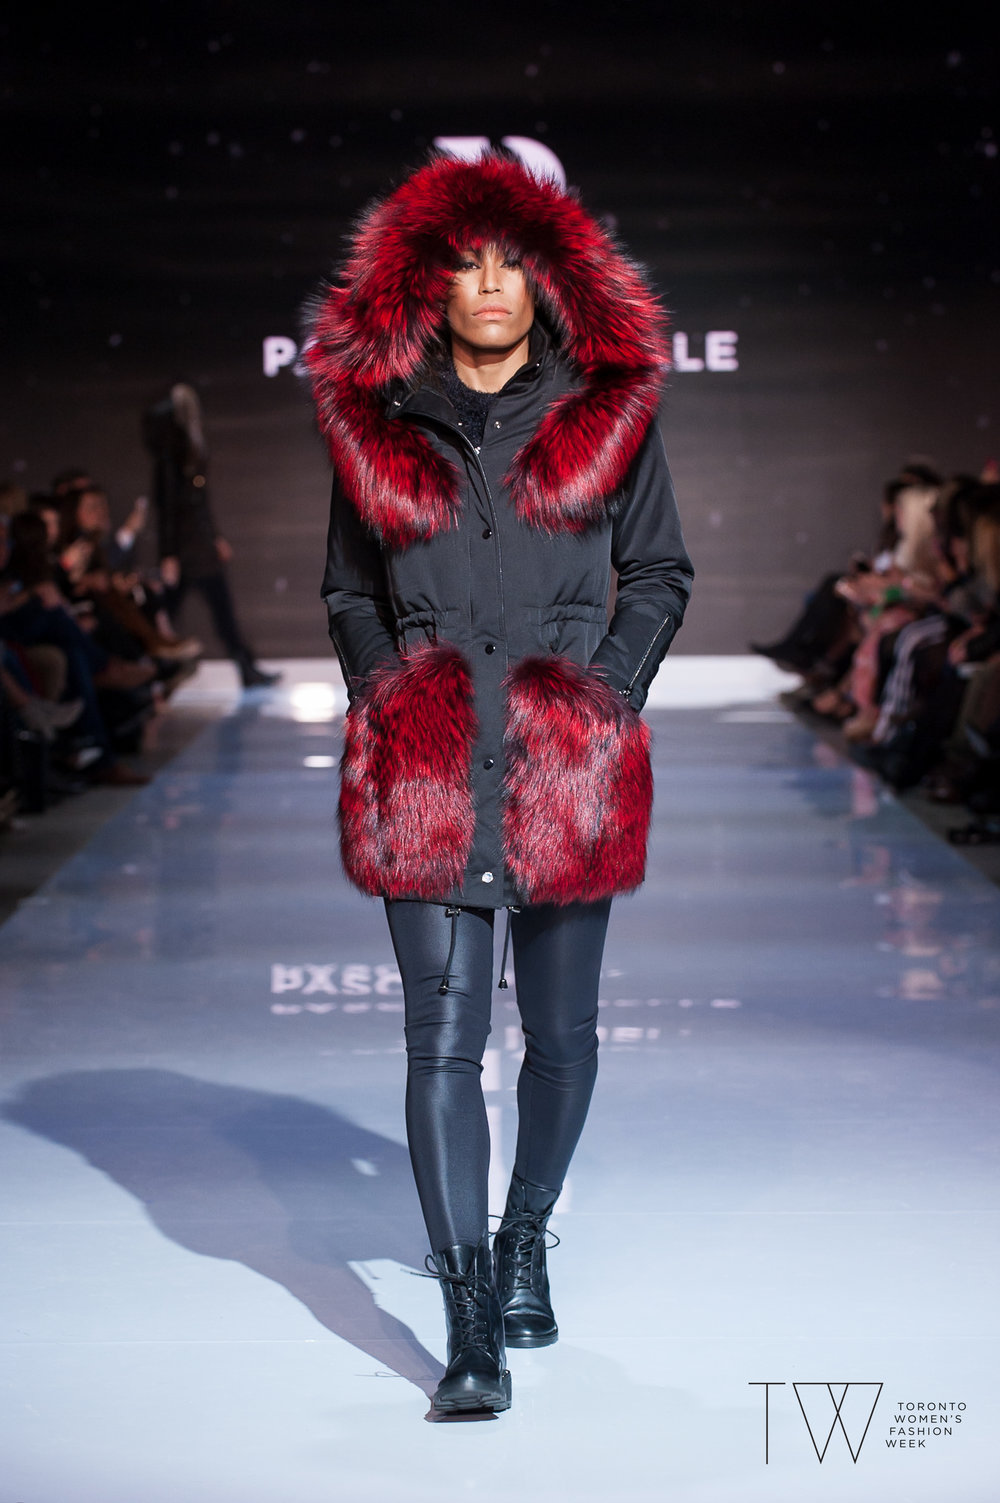 Pascal Labelle image courtesy of Toronto Women's Fashion Week